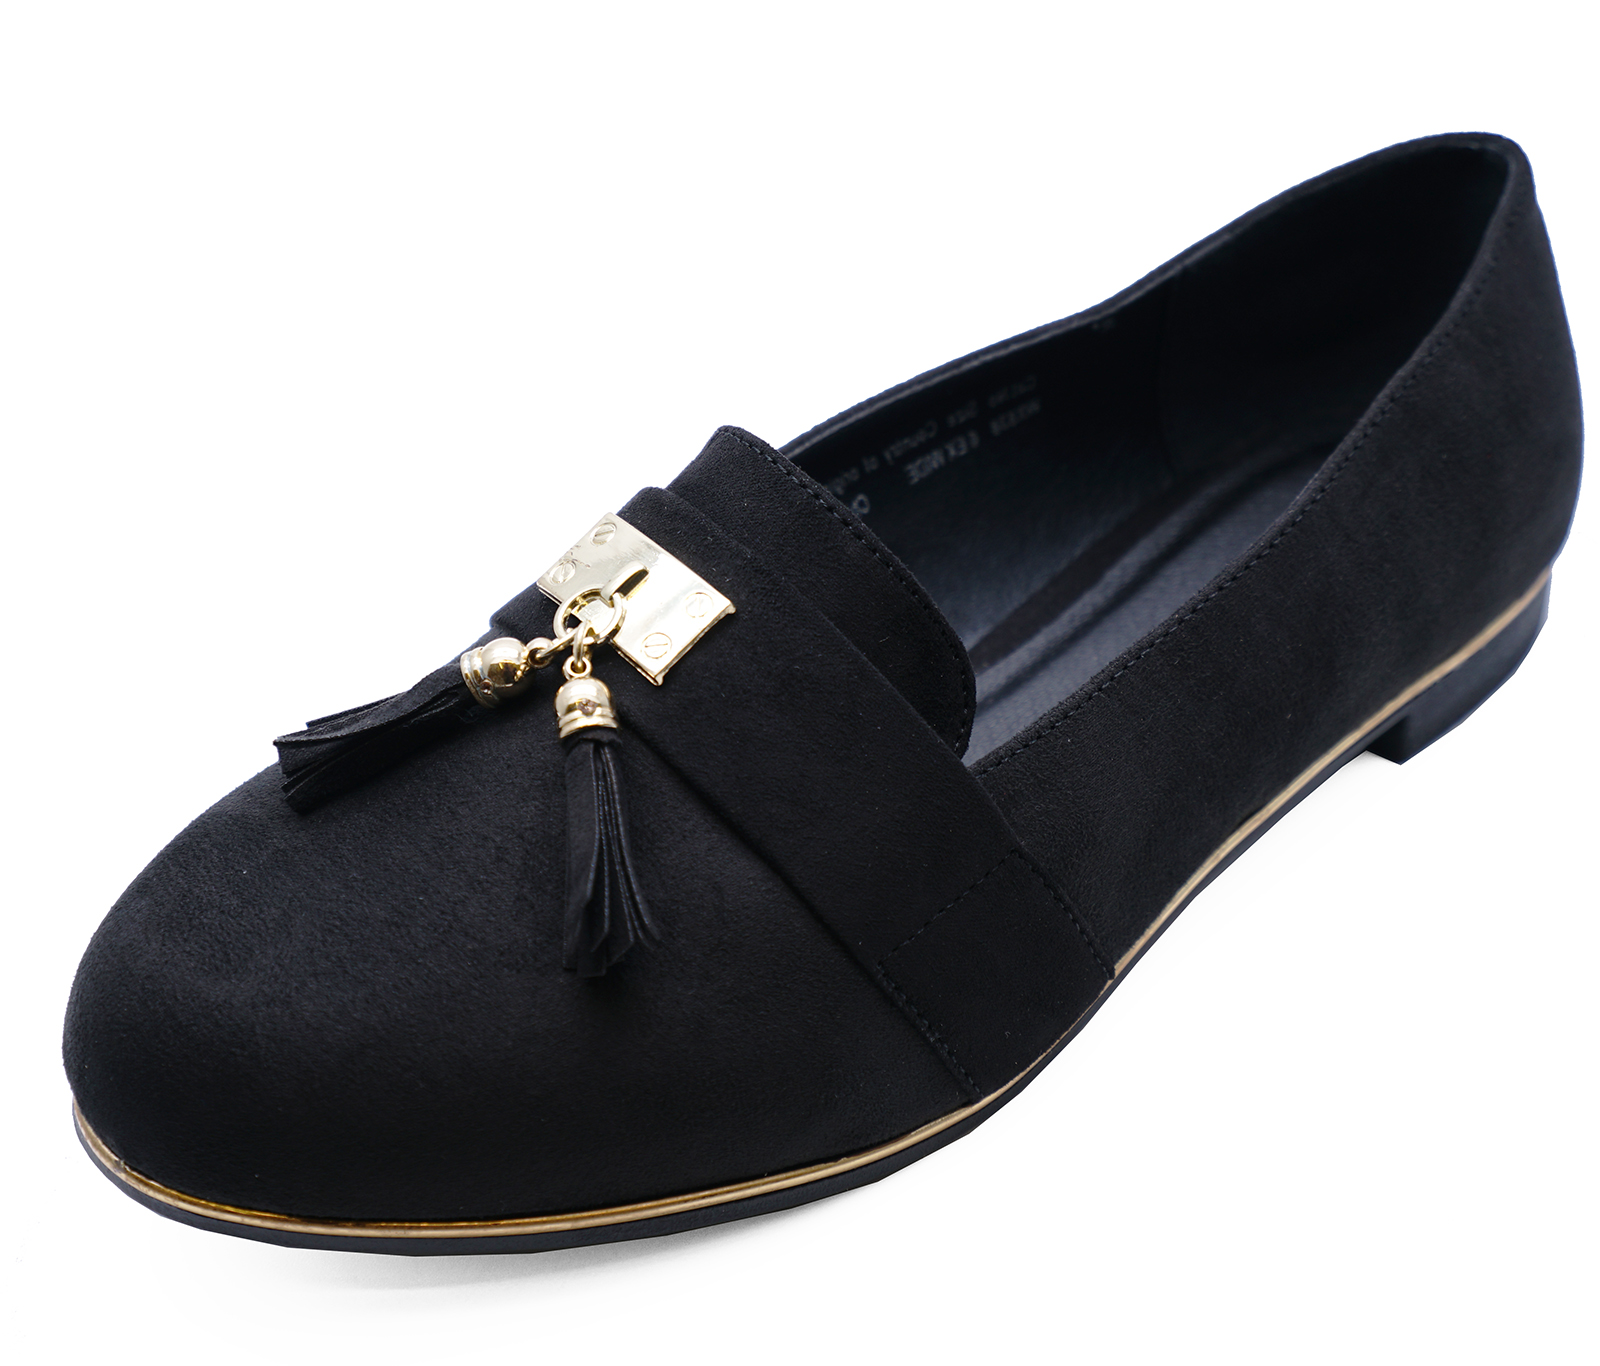 e73c965f56f Sentinel LADIES BLACK WIDE-FIT EEE FLAT SLIP-ON LOAFERS COMFY WORK SHOES  PUMPS SIZES